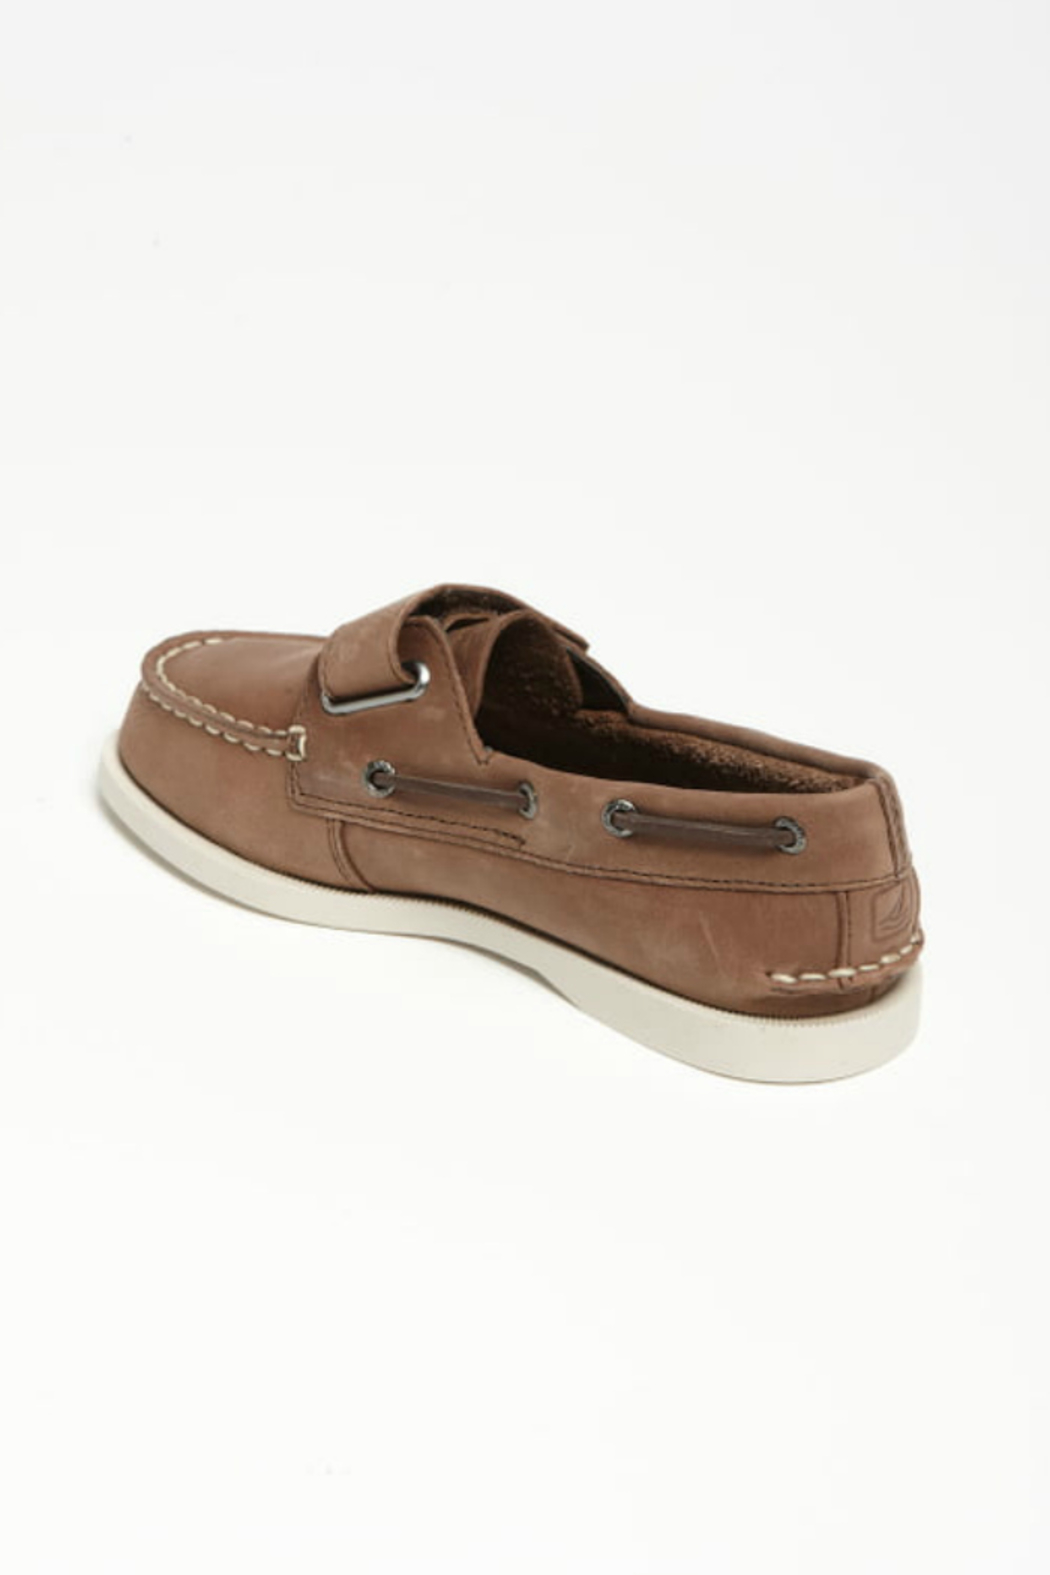 Sperry SPERRY A/O HL KIDS - Side Cropped Image